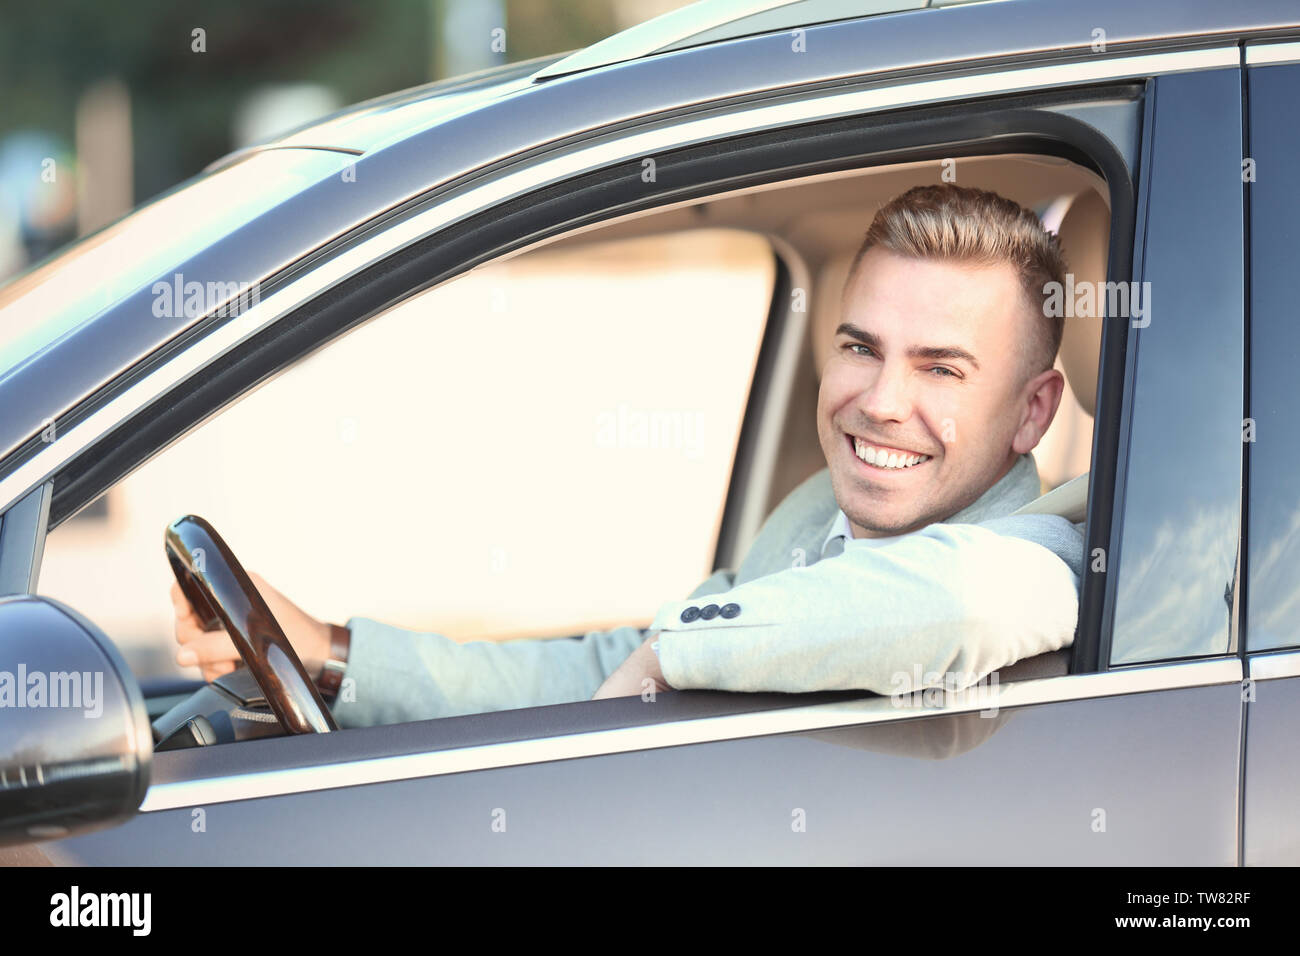 Man in formal wear on driver's seat of car - Stock Image